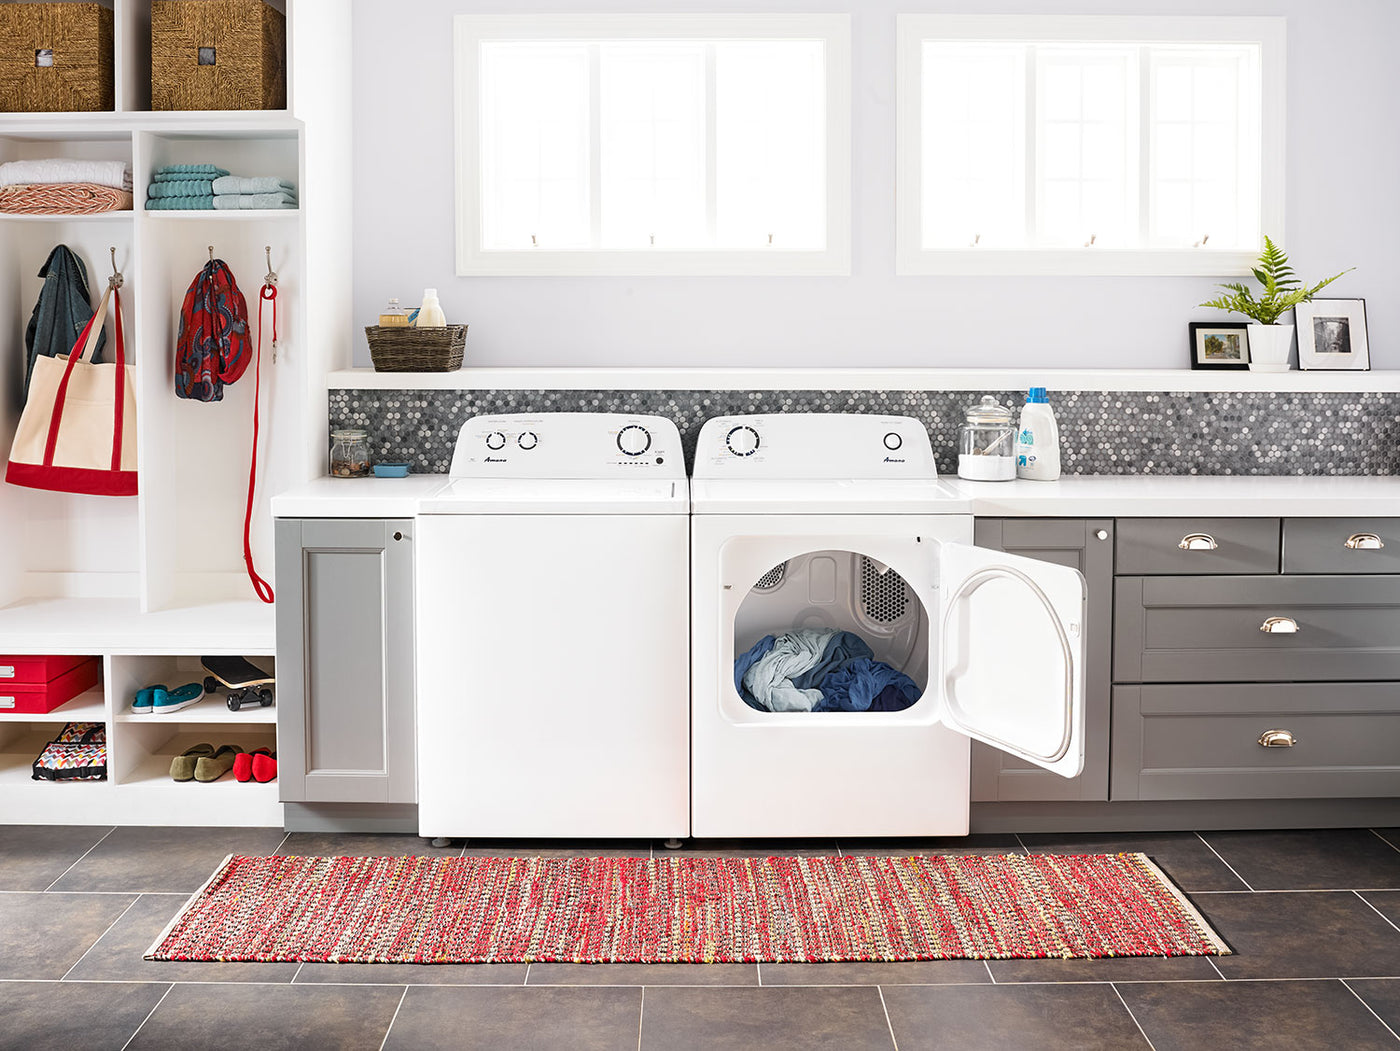 Amana 4 0 Cu  Ft  Top-Load Washer with Dual Action Agitator – NTW4516FW